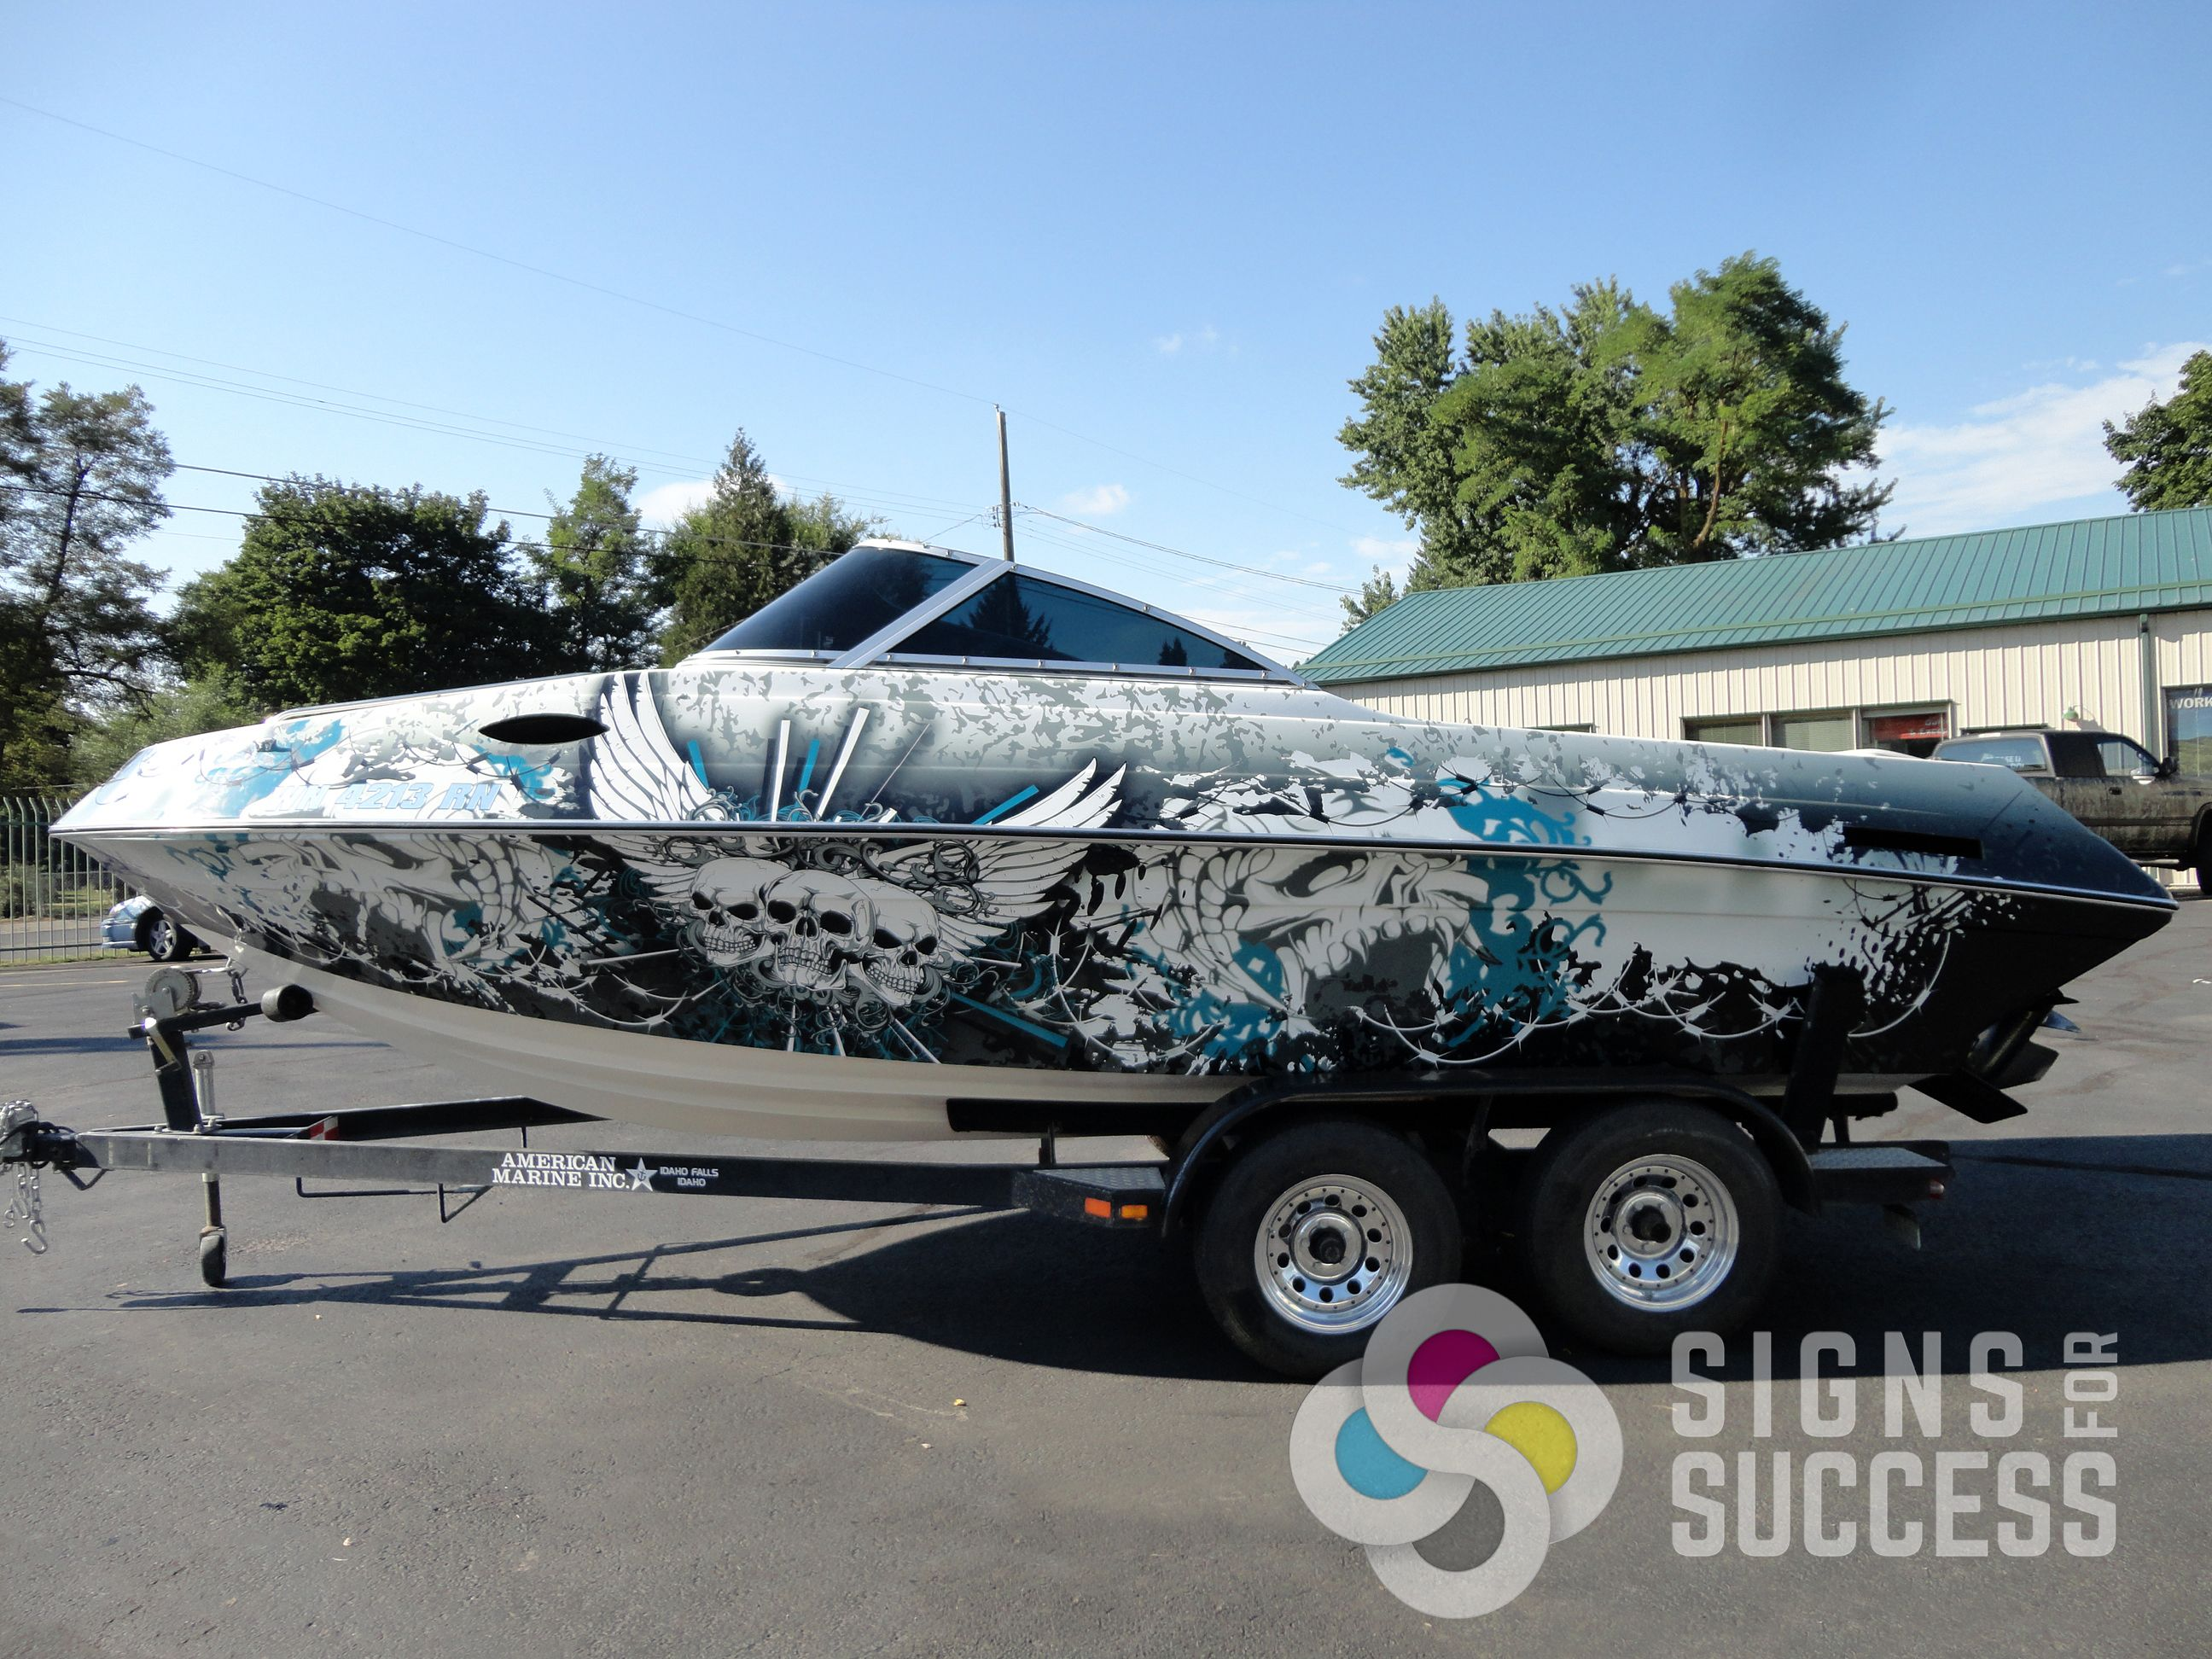 Best Boat Wraps Custom Vinyl Images On Pinterest Boat Wraps - Boat vinyl decalstracker inch boat graphic vinyl decals set ofgreat